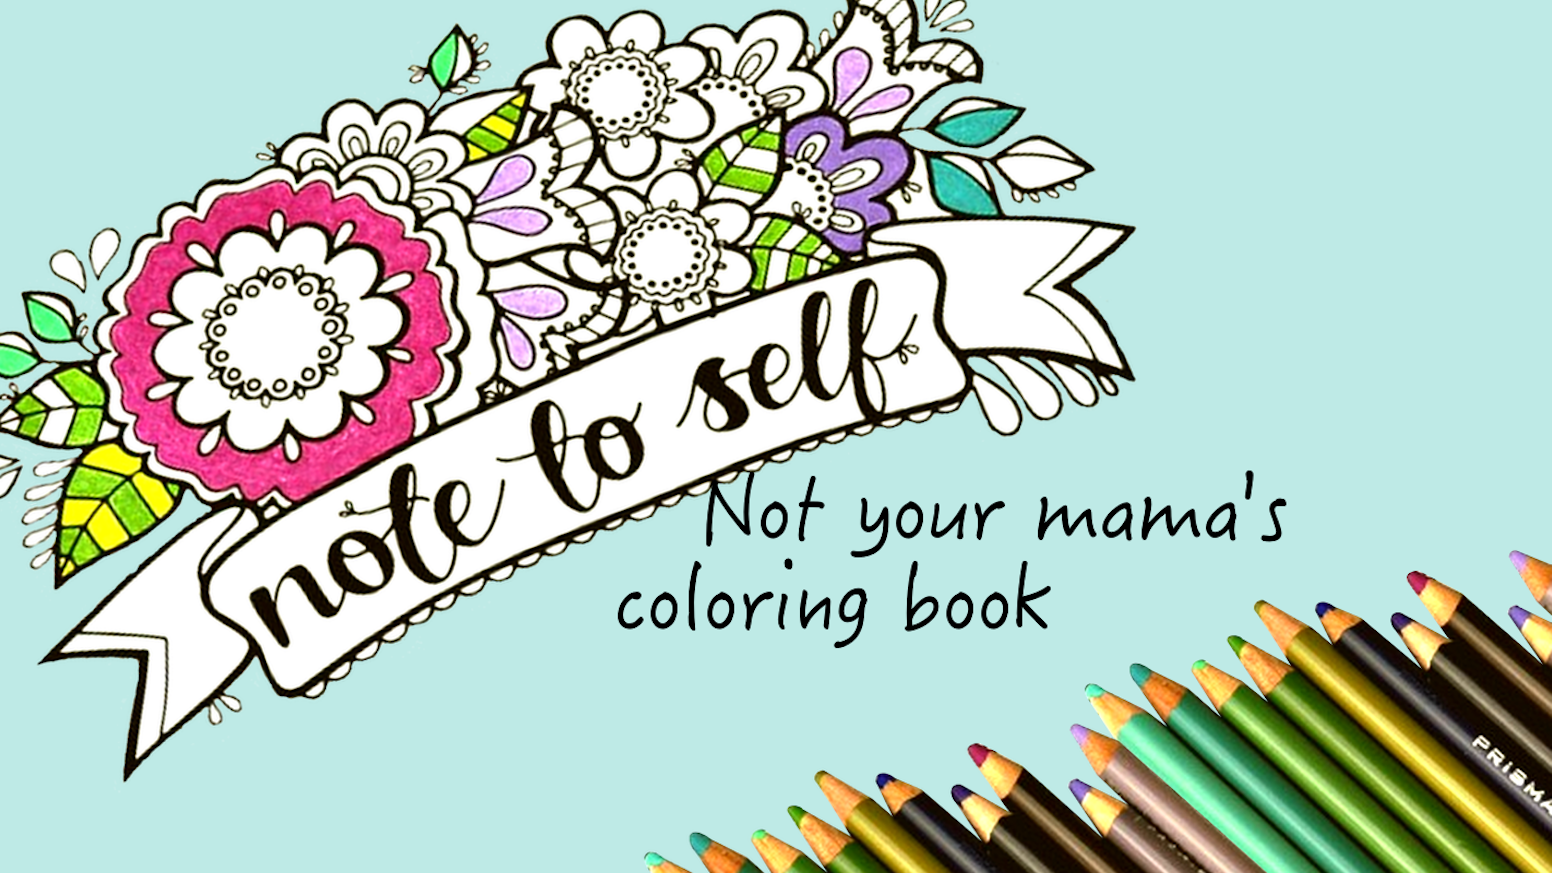 Coloring book html5 - This Ain T Your Momma S Coloring Book Colorable Cover To Cover Hand